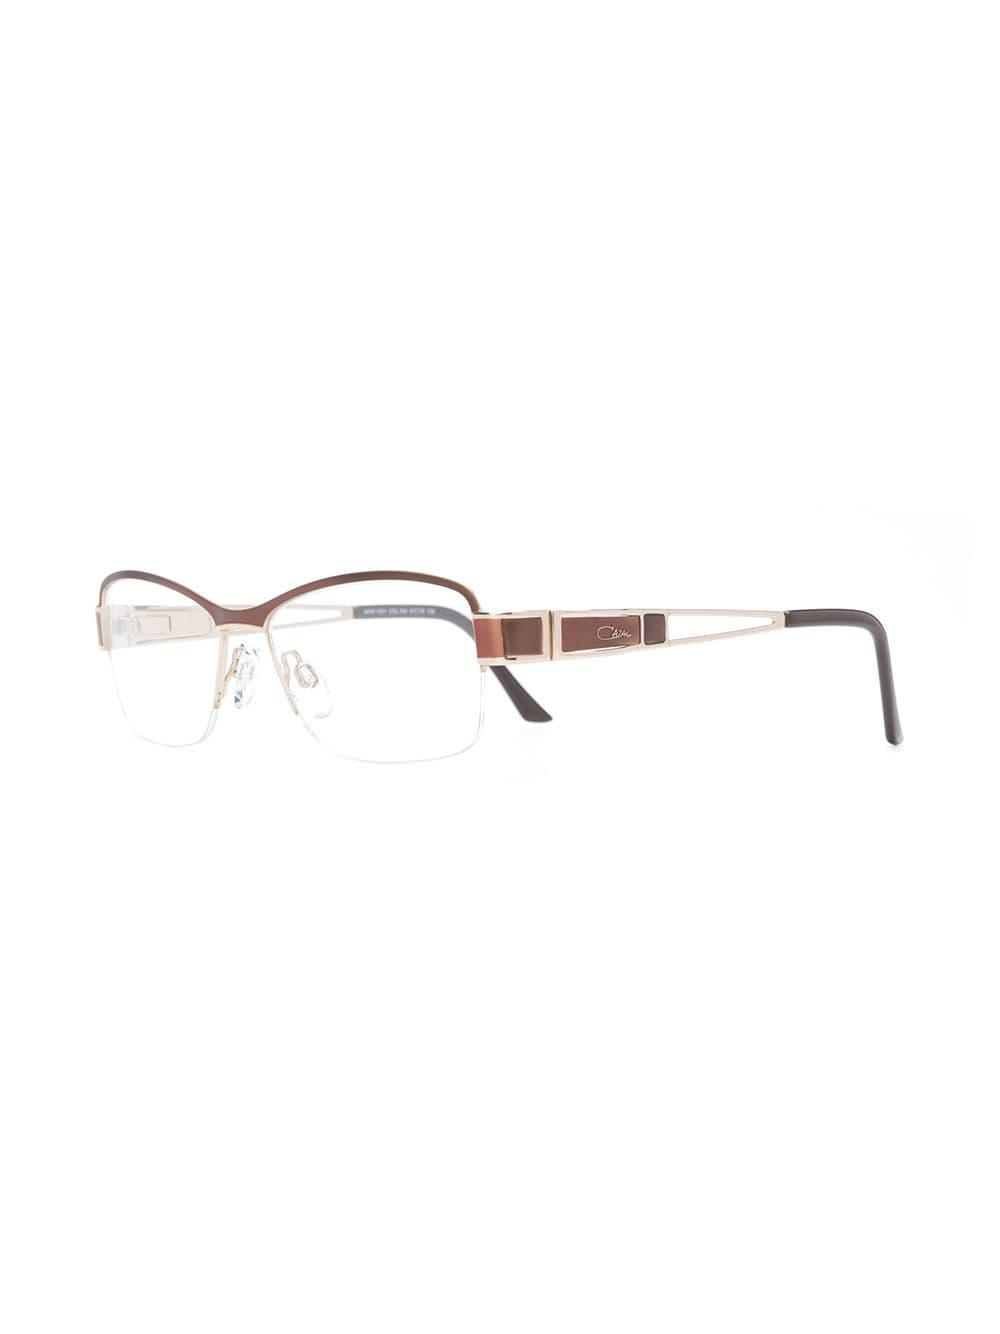 bfeb08603c8d Lyst - Cazal Rectangle Frame Glasses in Brown